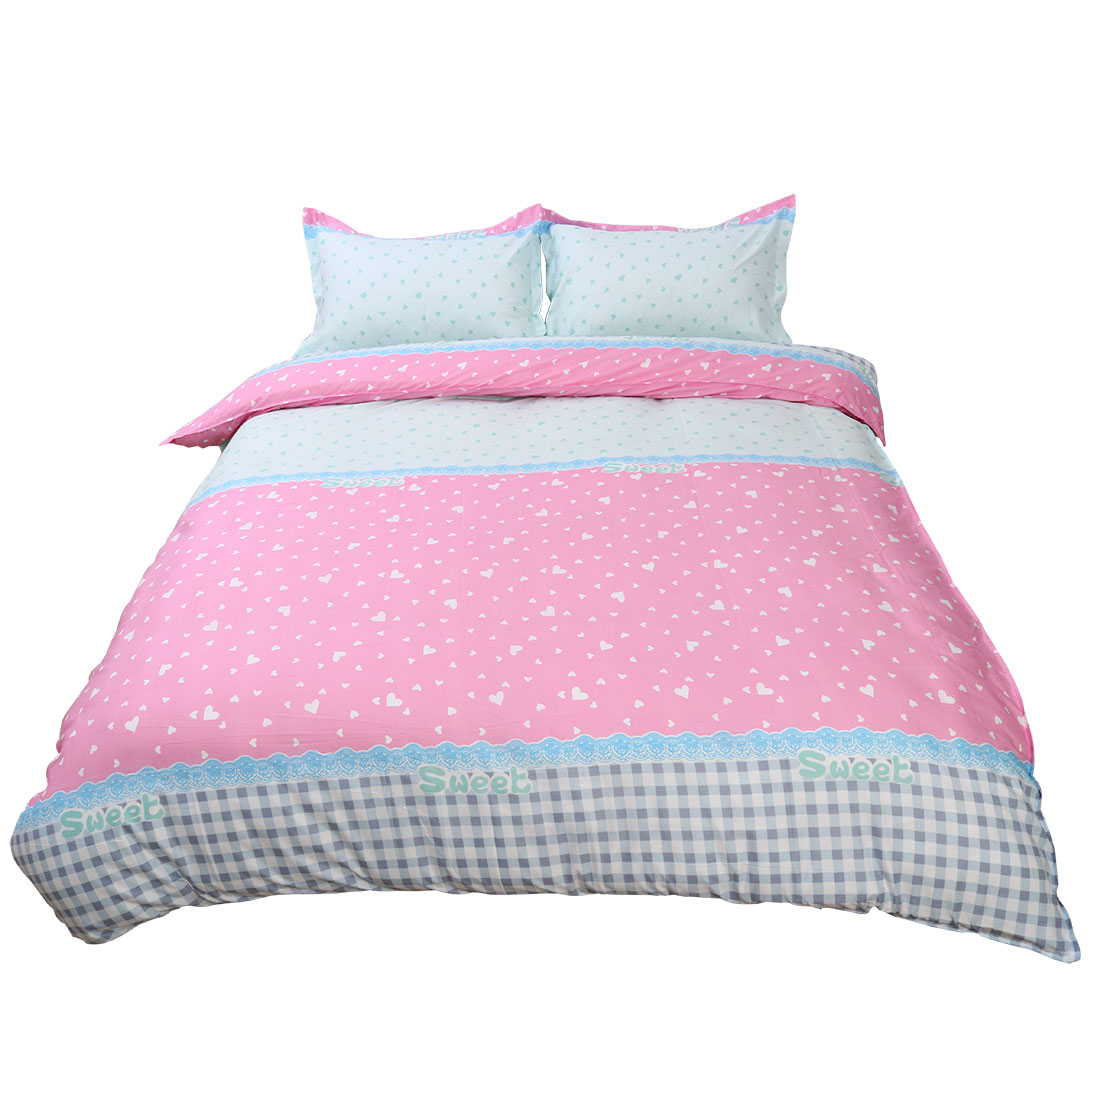 Hearts Pattern Duvet Cover Pillowcase Quilt Cover Bedding Set Single Size Pink